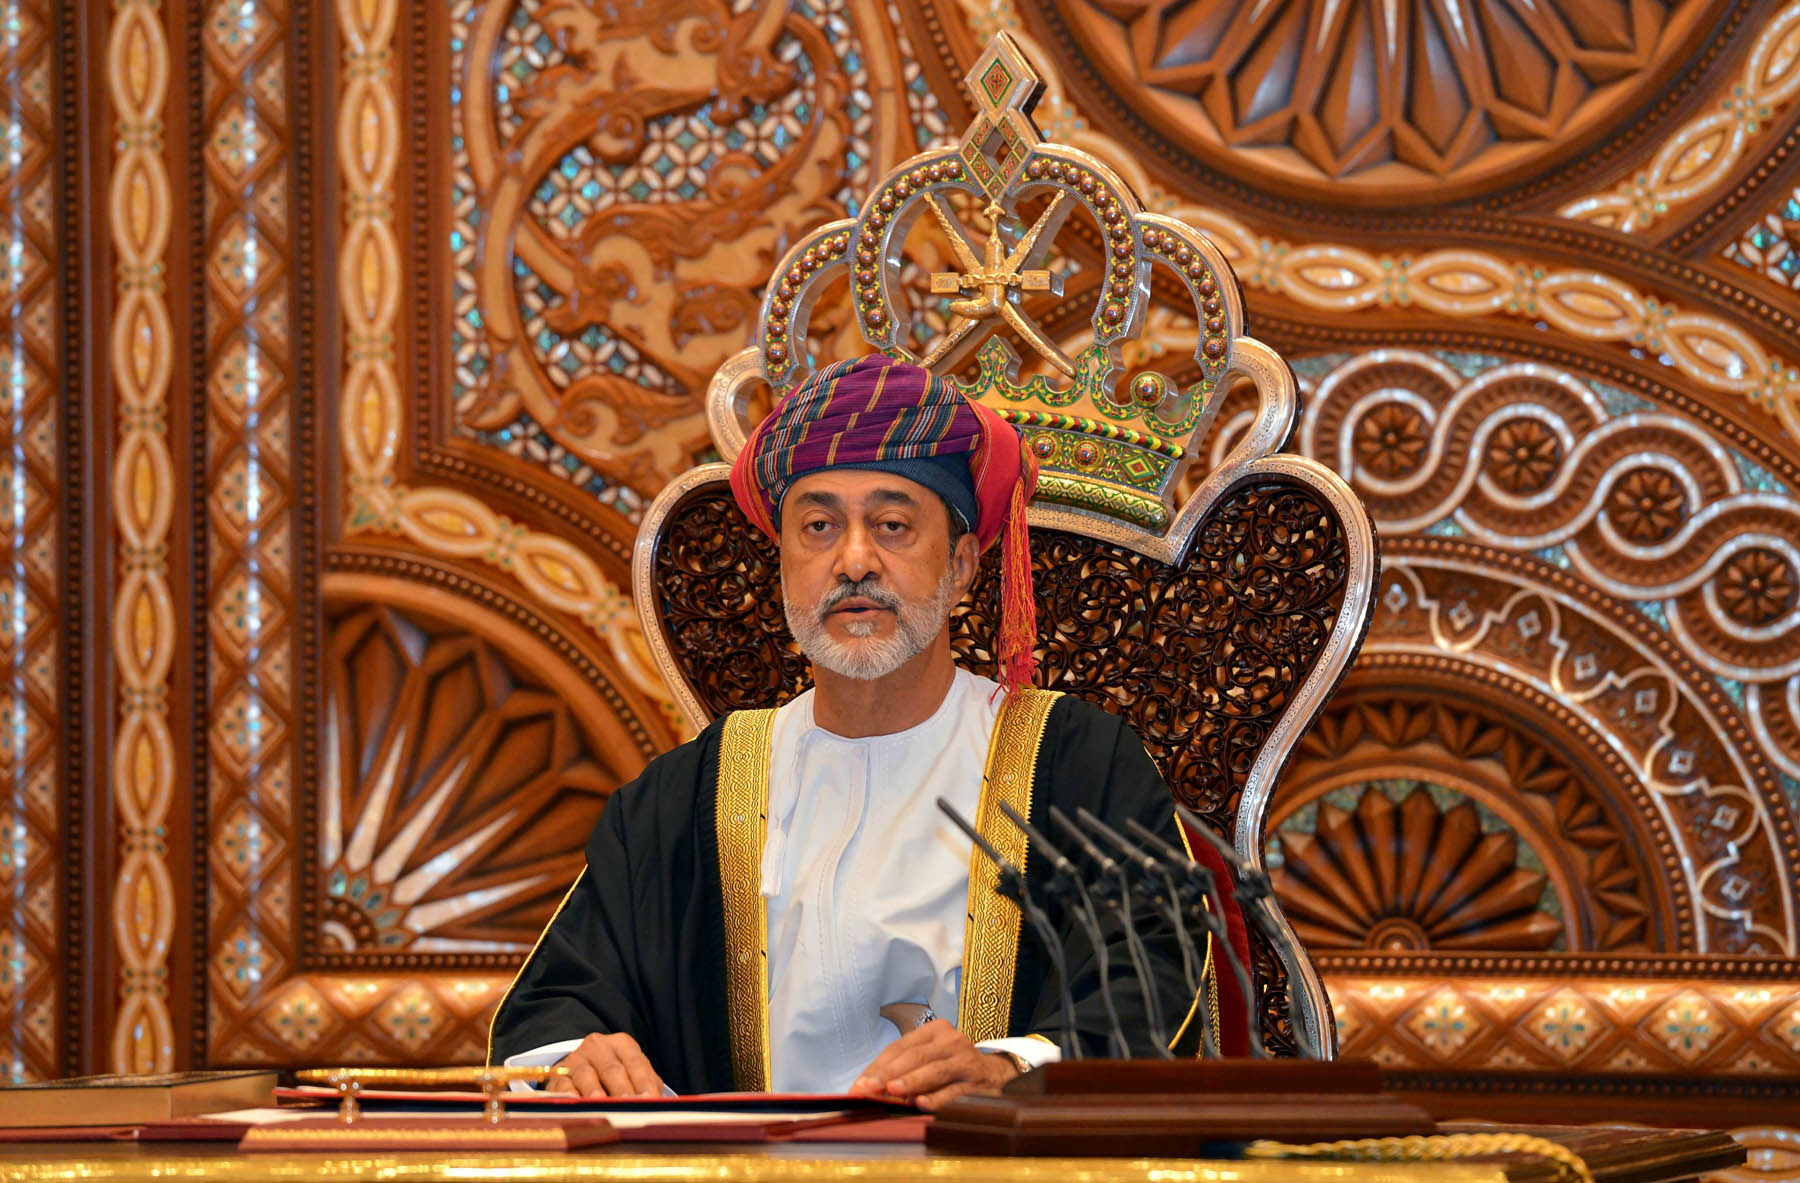 Sultan Haitham bin Tariq al-Said gives a speech after being sworn in before the royal family council in Muscat, Oman January 11. (Reuters)